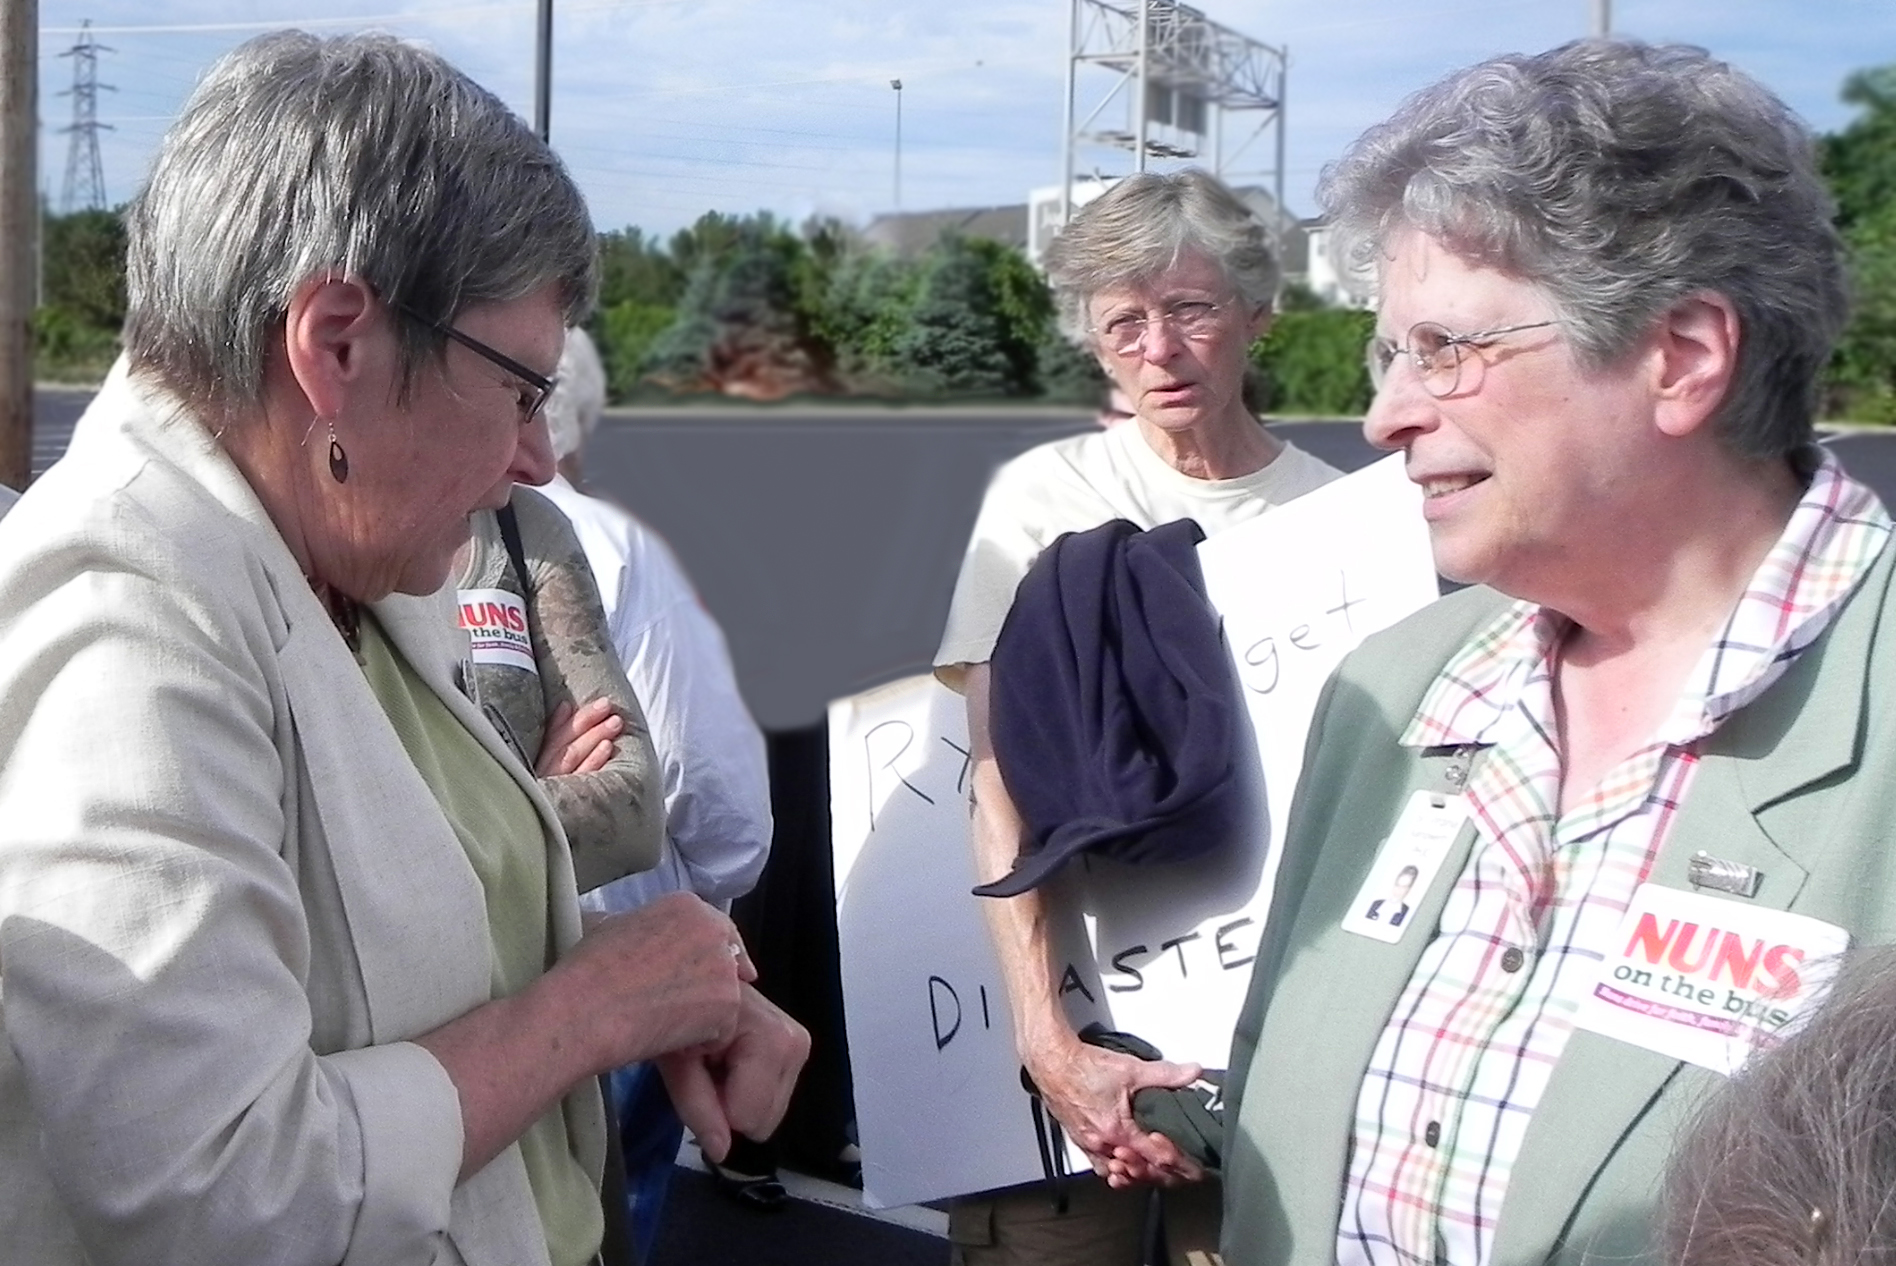 Sister Simone Campbell and Sister Virginia Kampwerth, PHJC visit during the tour stop in South Bend.  Sister Mary Baird, with sign, looks on.